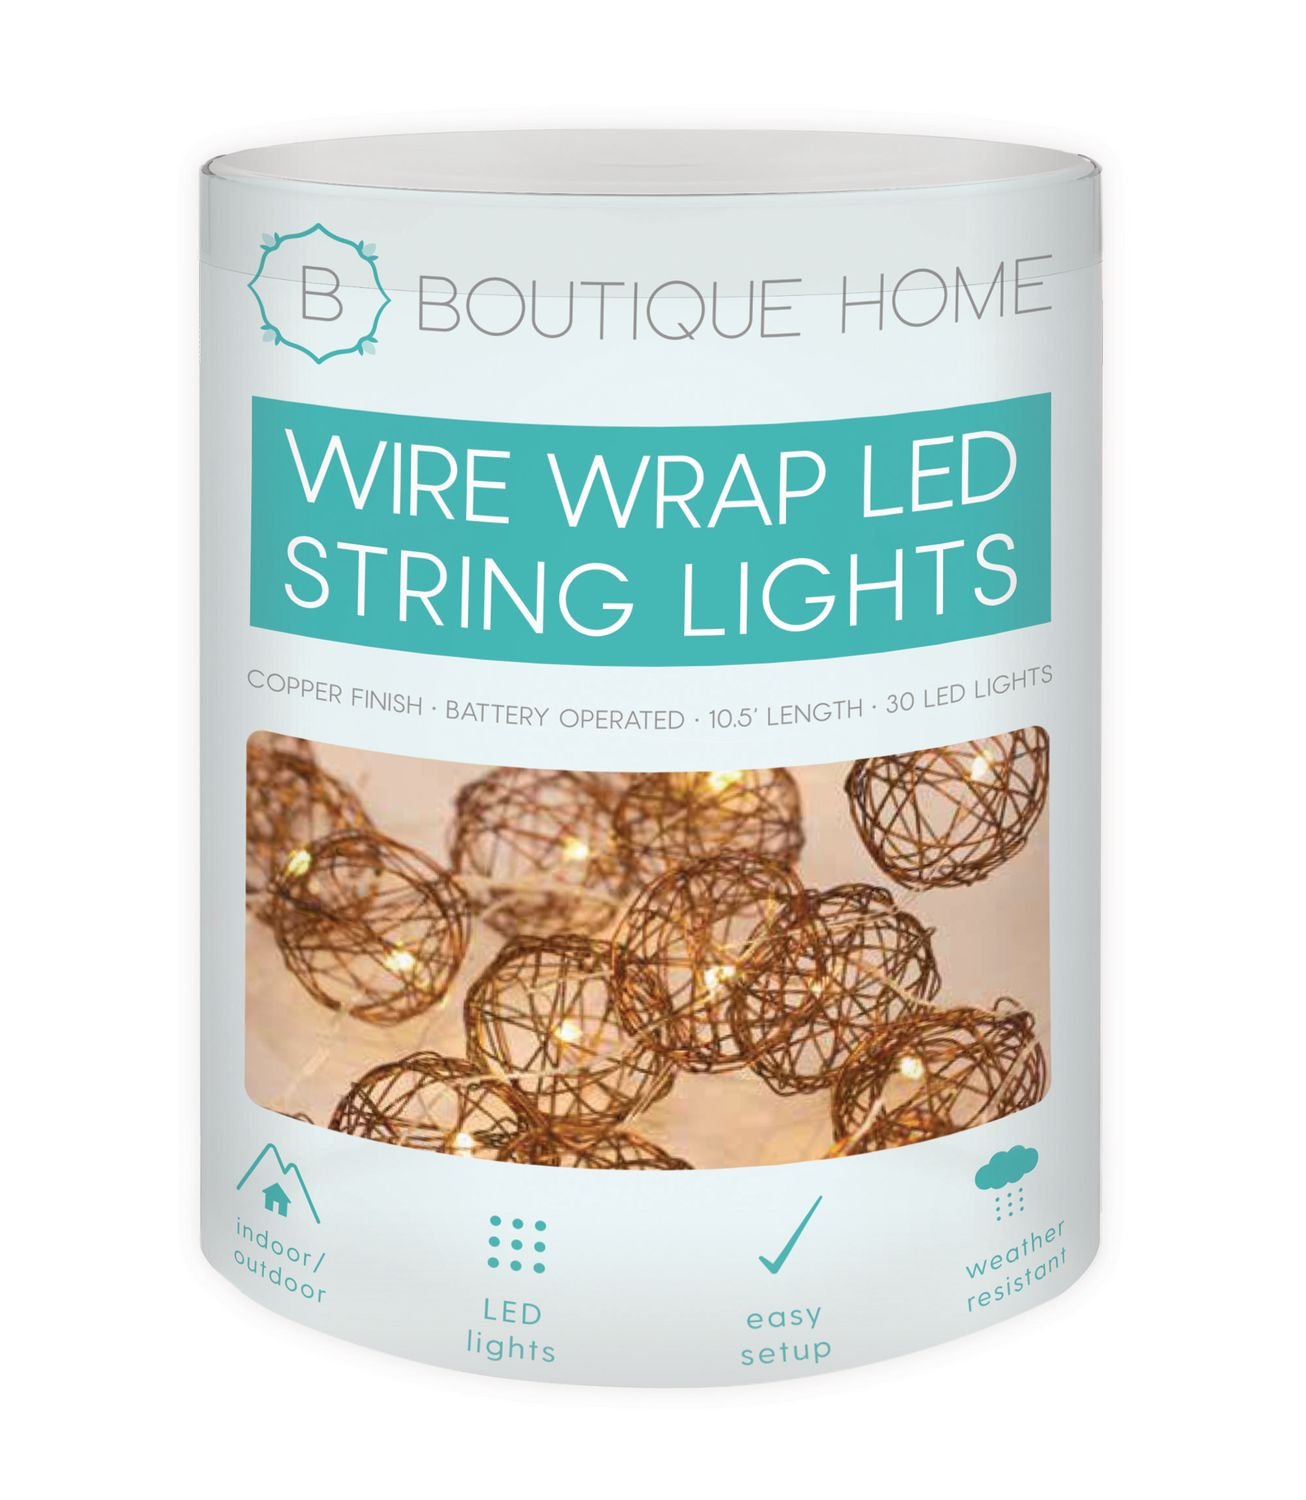 Boutique Home Copper Wired Wrap LED String Lights | Walmart Canada